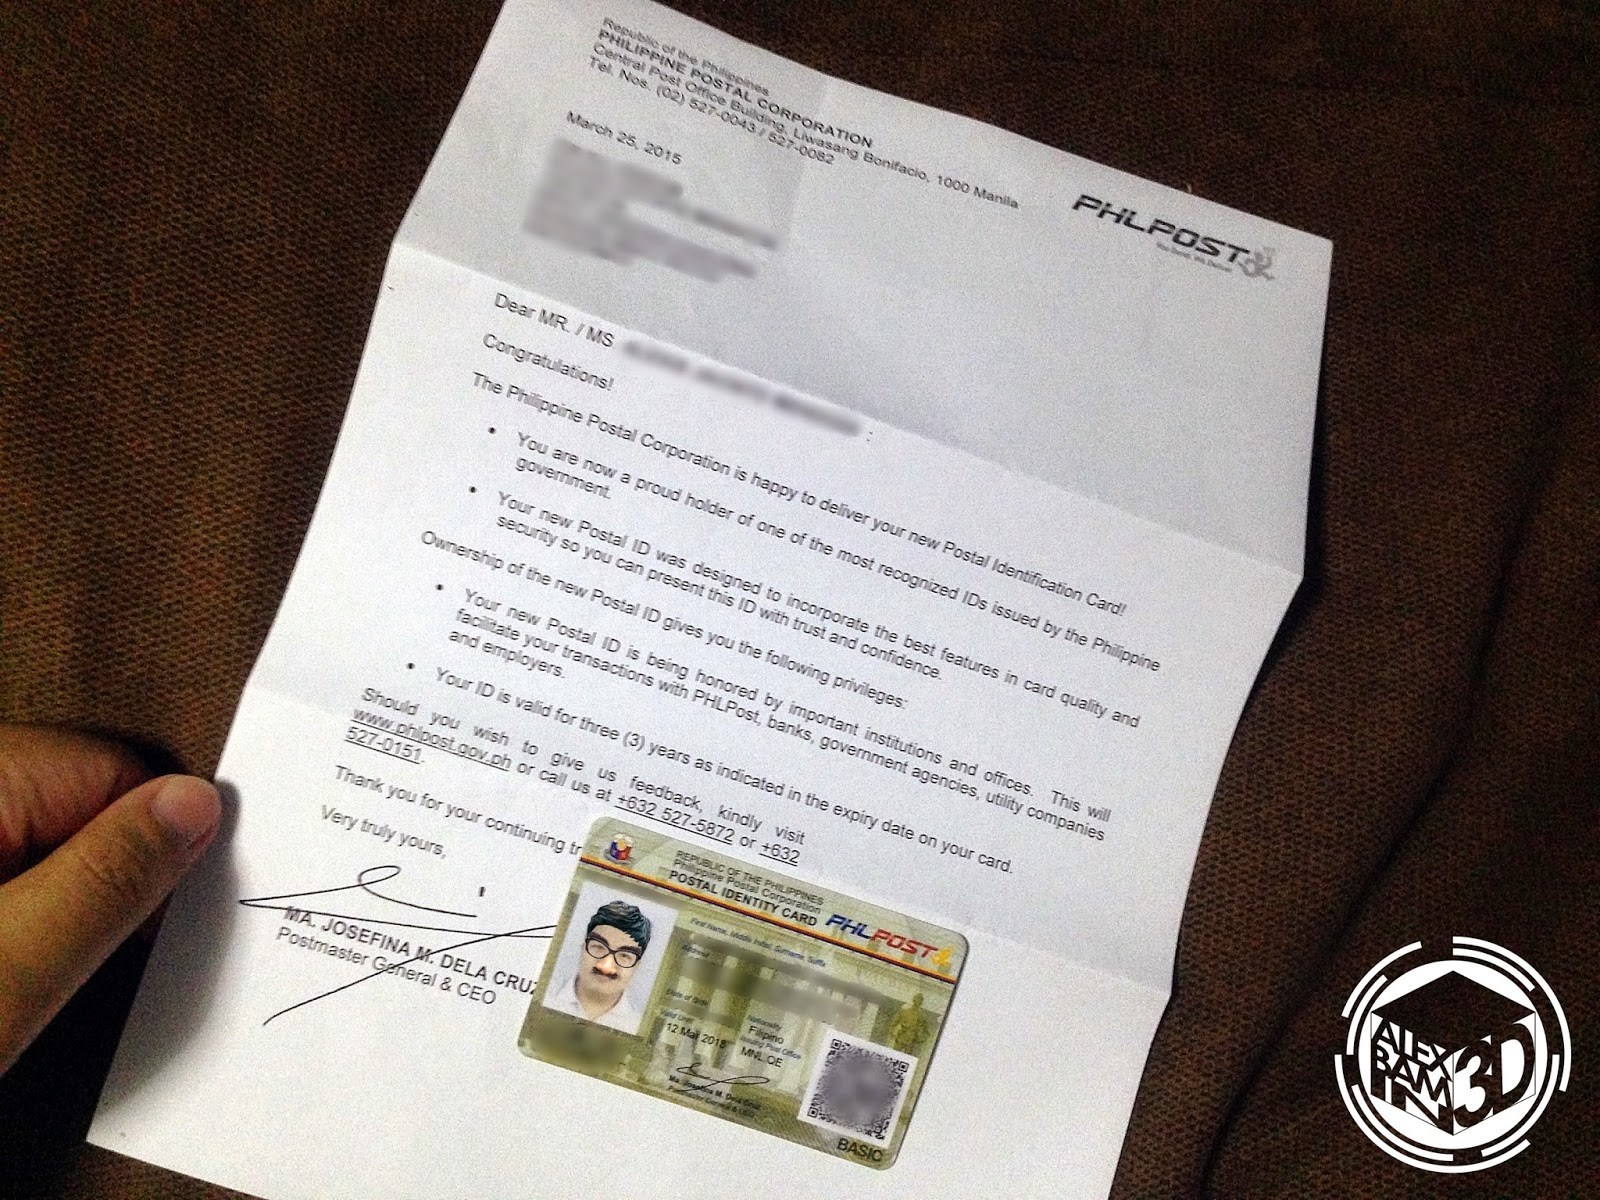 Getting the new philippine postal id alexbamin3d if youre still confused om how to get the new postal id you can check out the frequently asked questions that our friends from the philippine postal aiddatafo Gallery